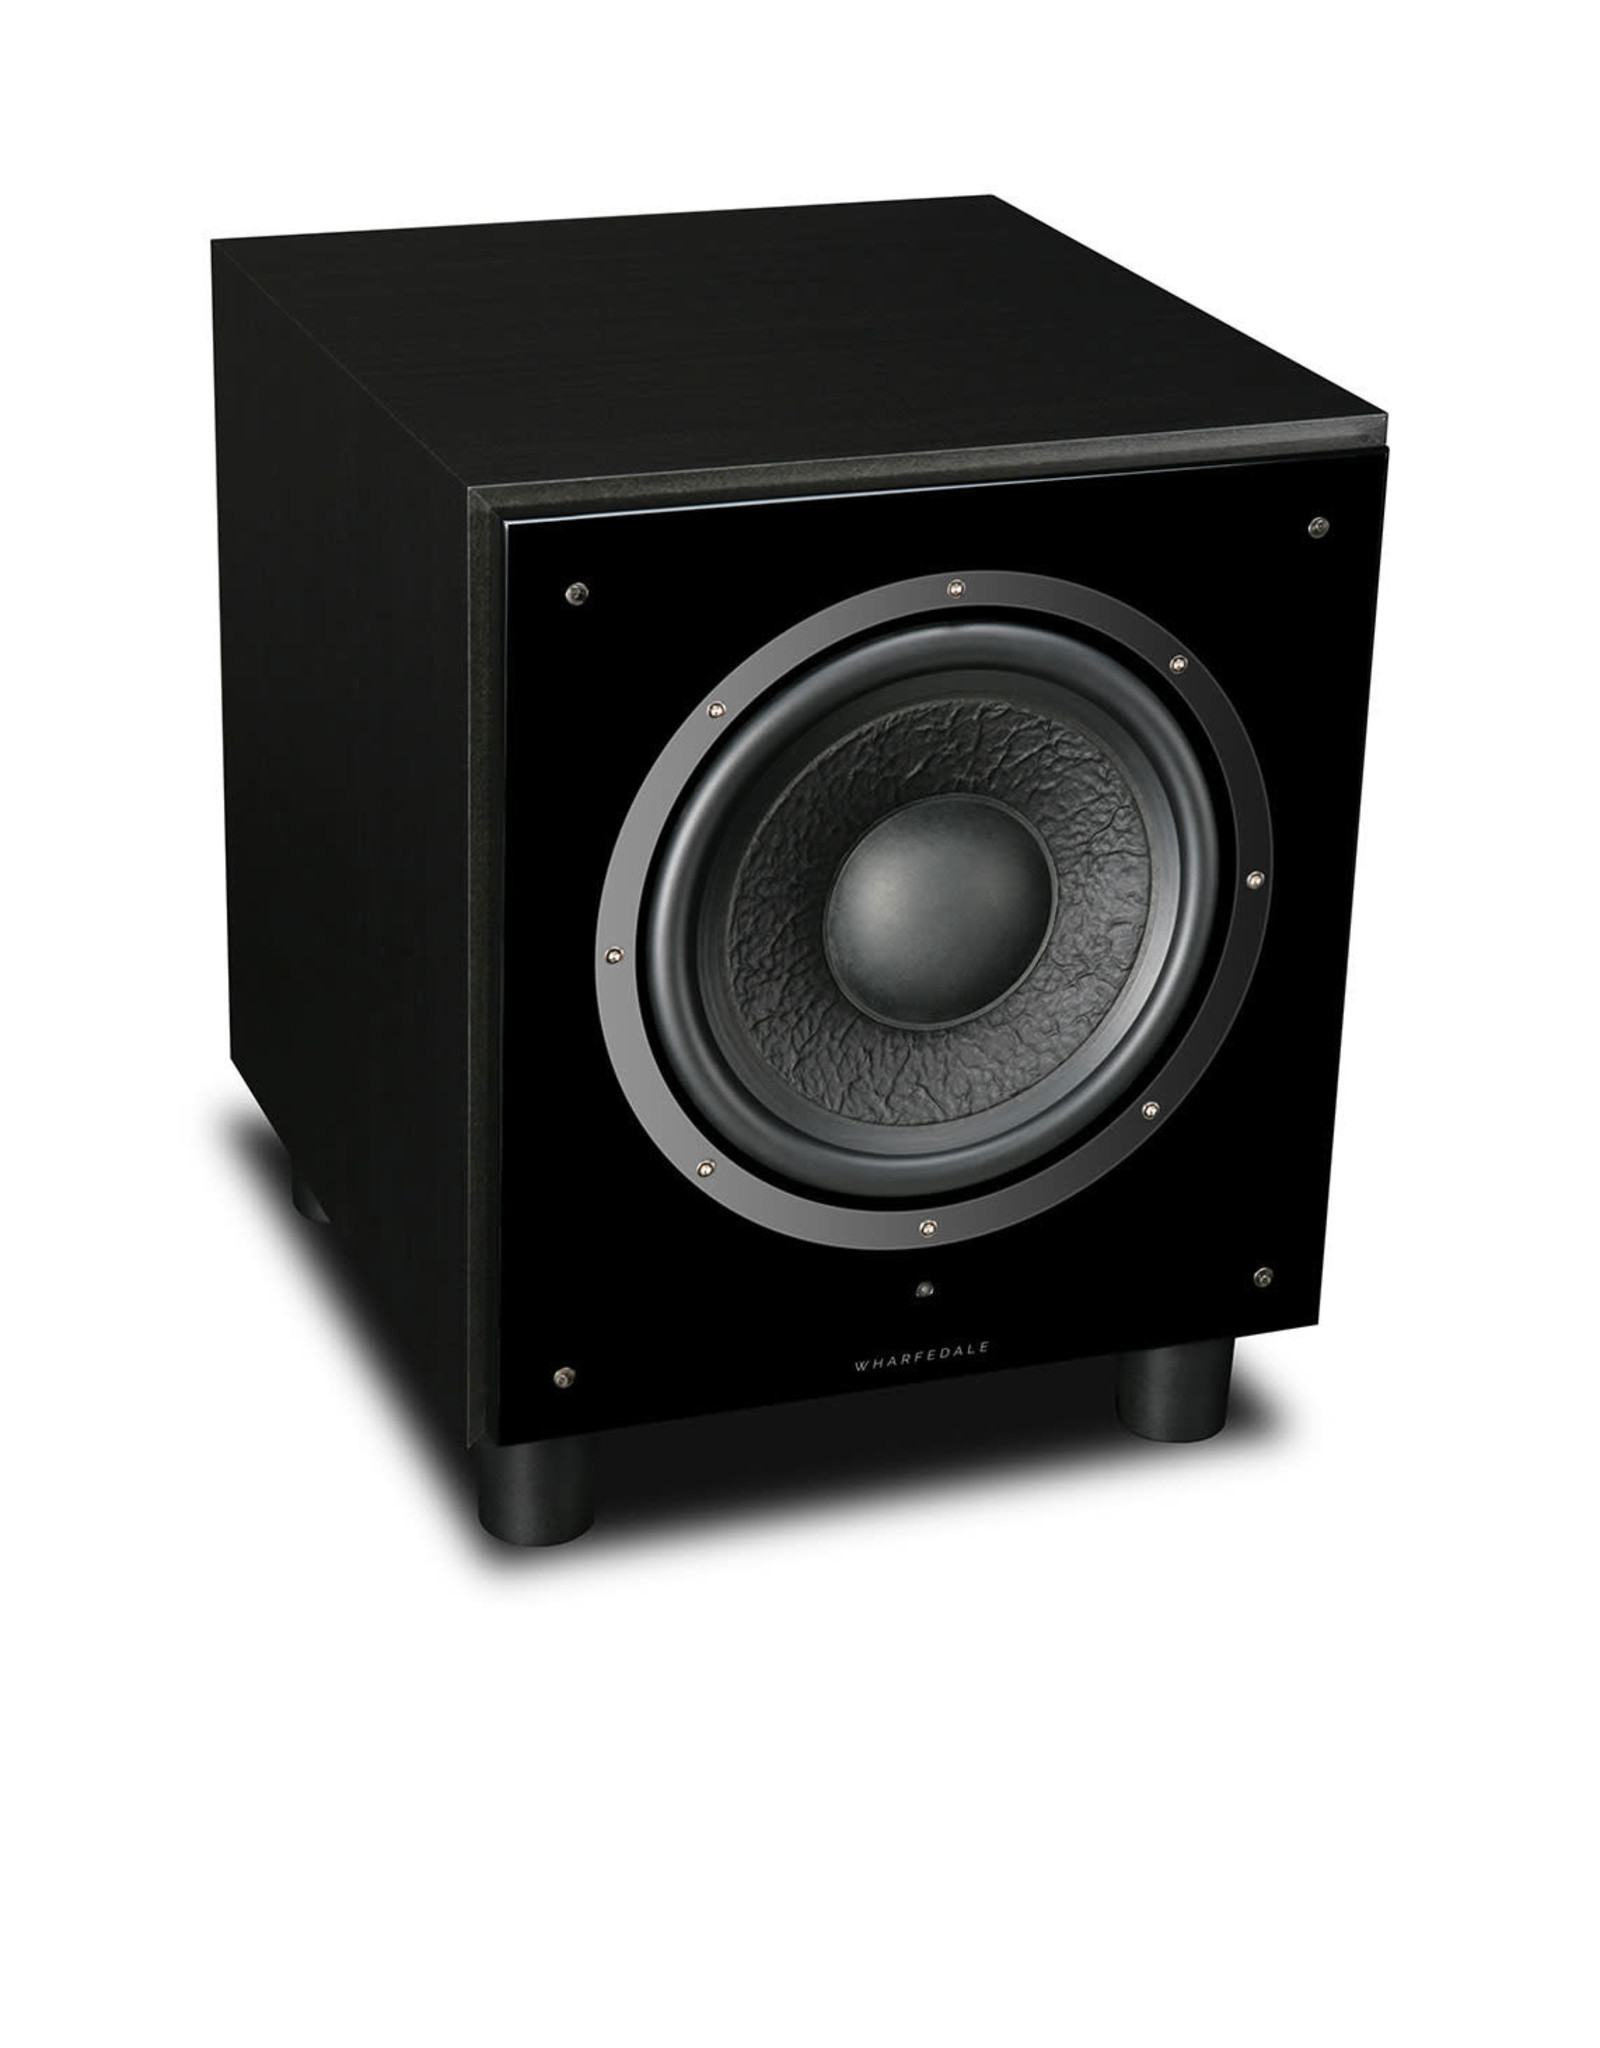 Wharfedale Wharfedale SW-15 Subwoofer